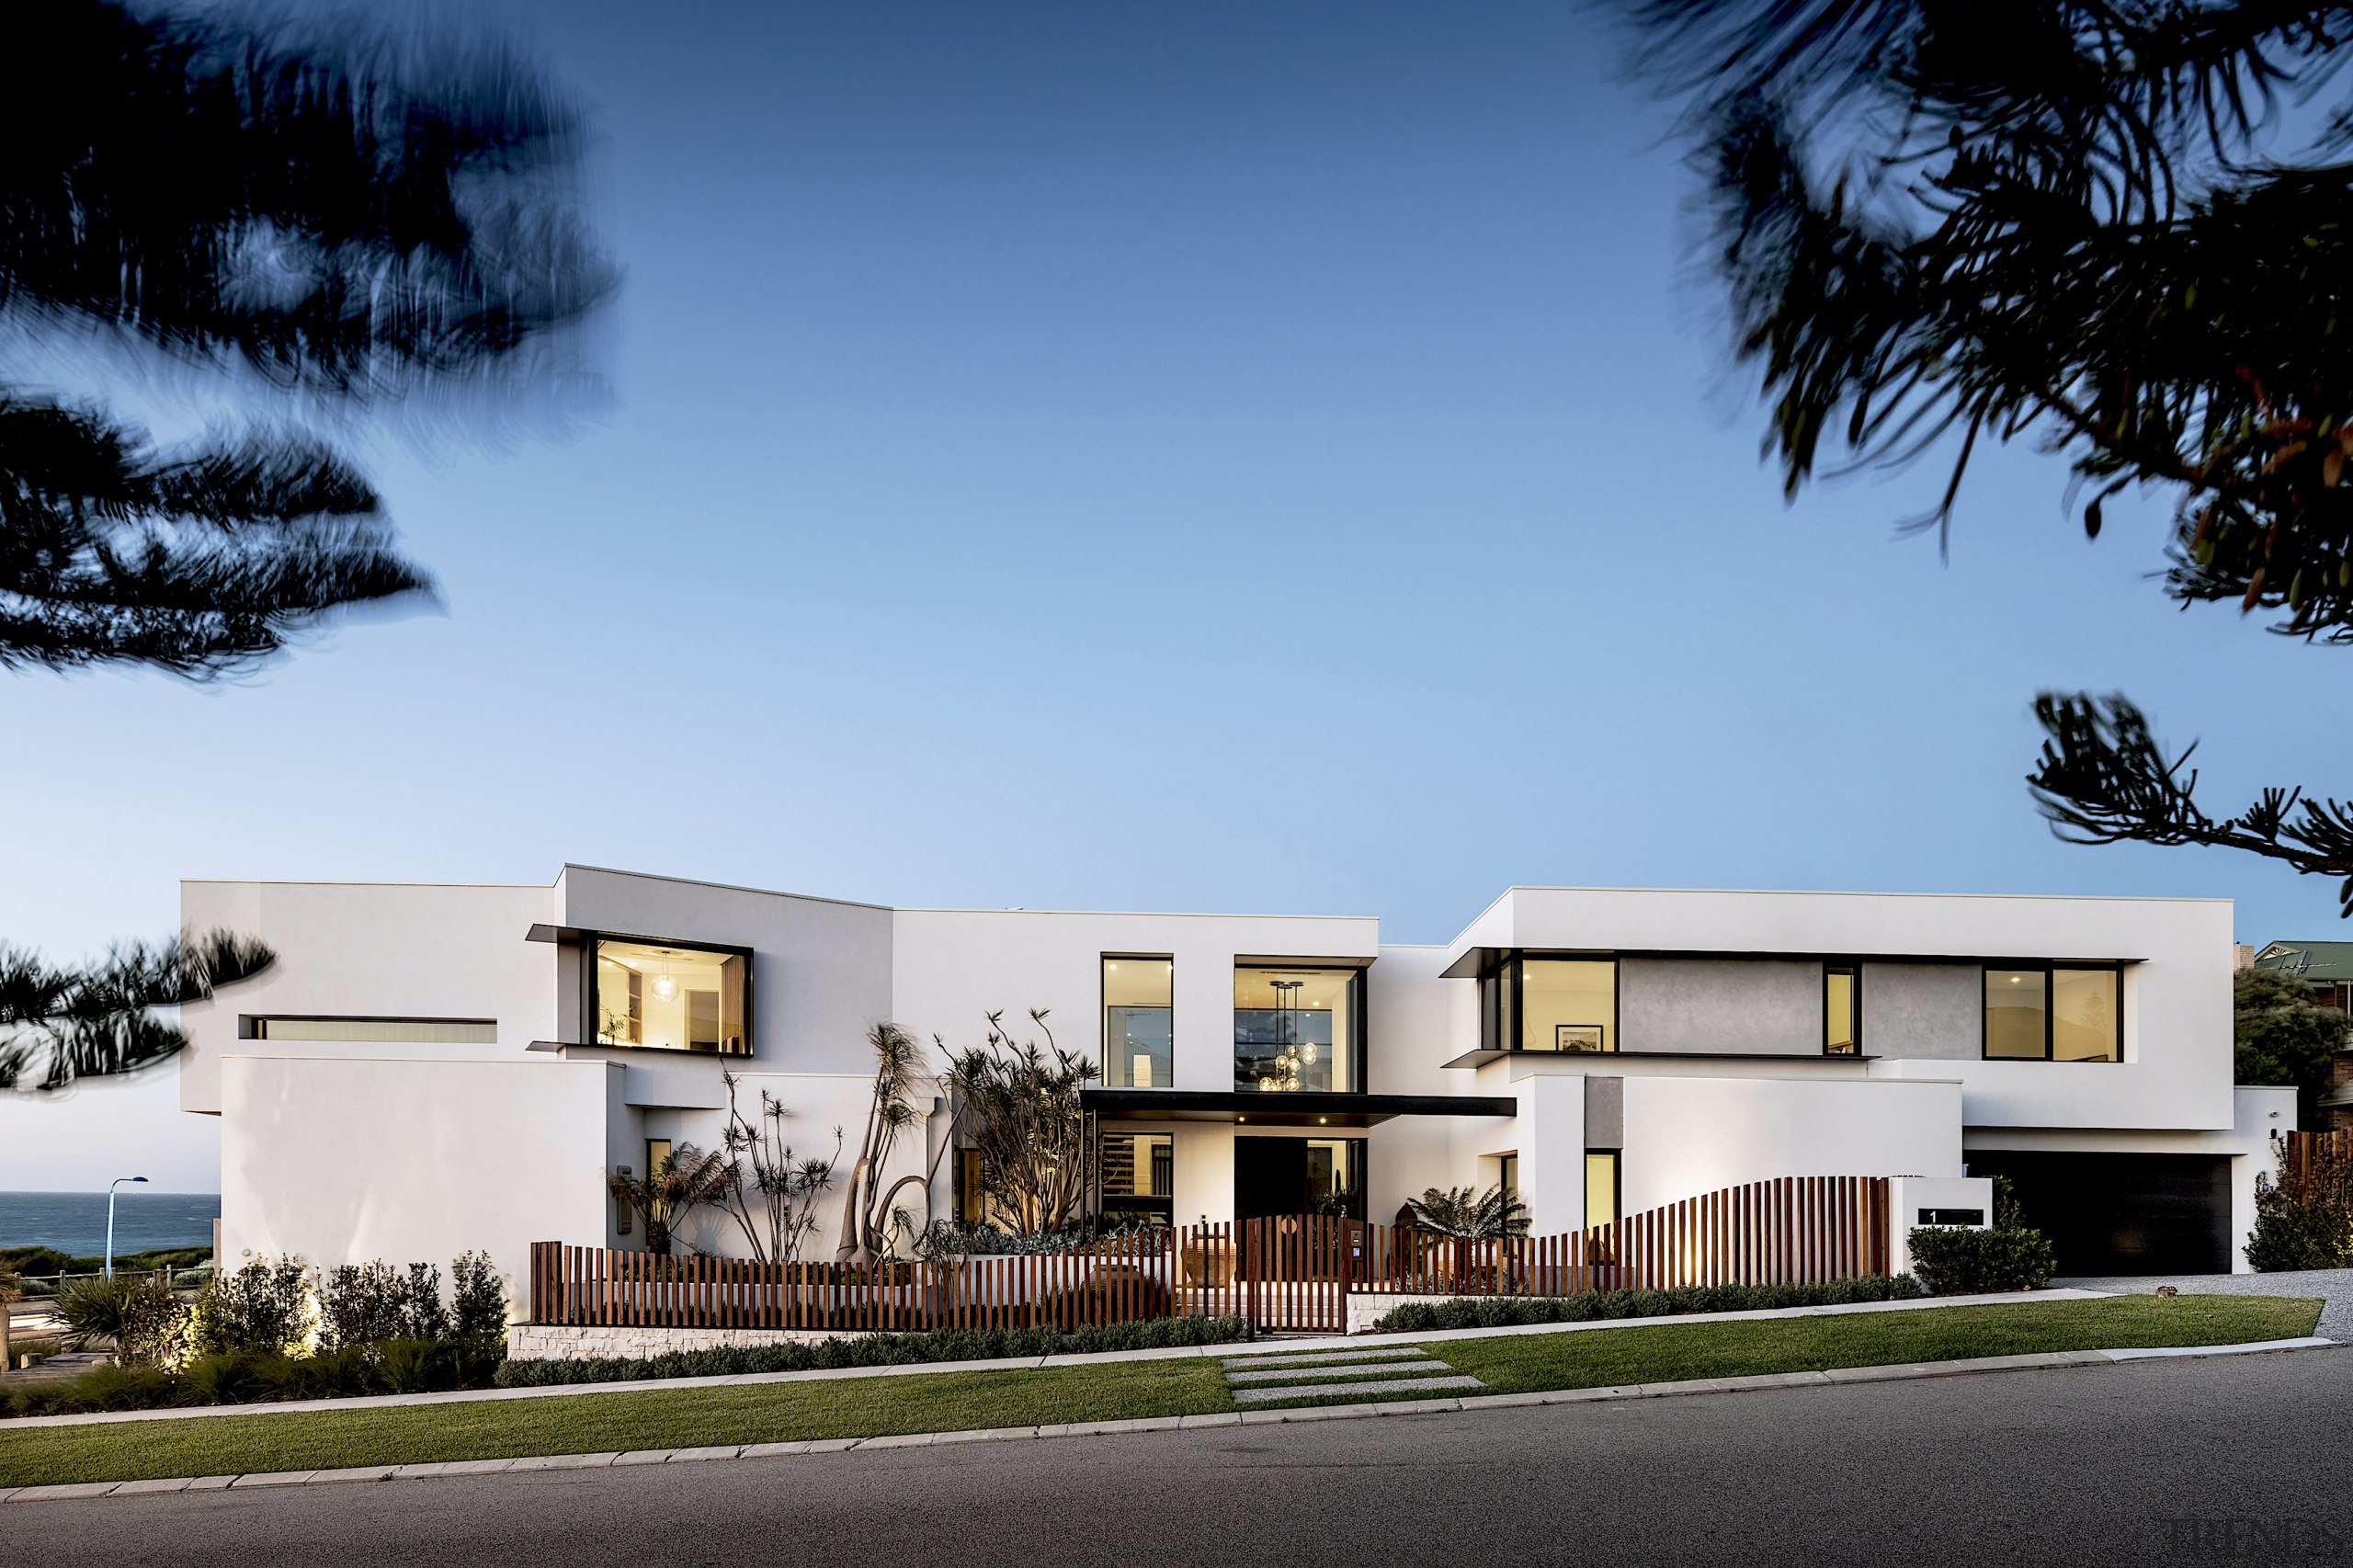 Given the sloping site, the house is three-levels